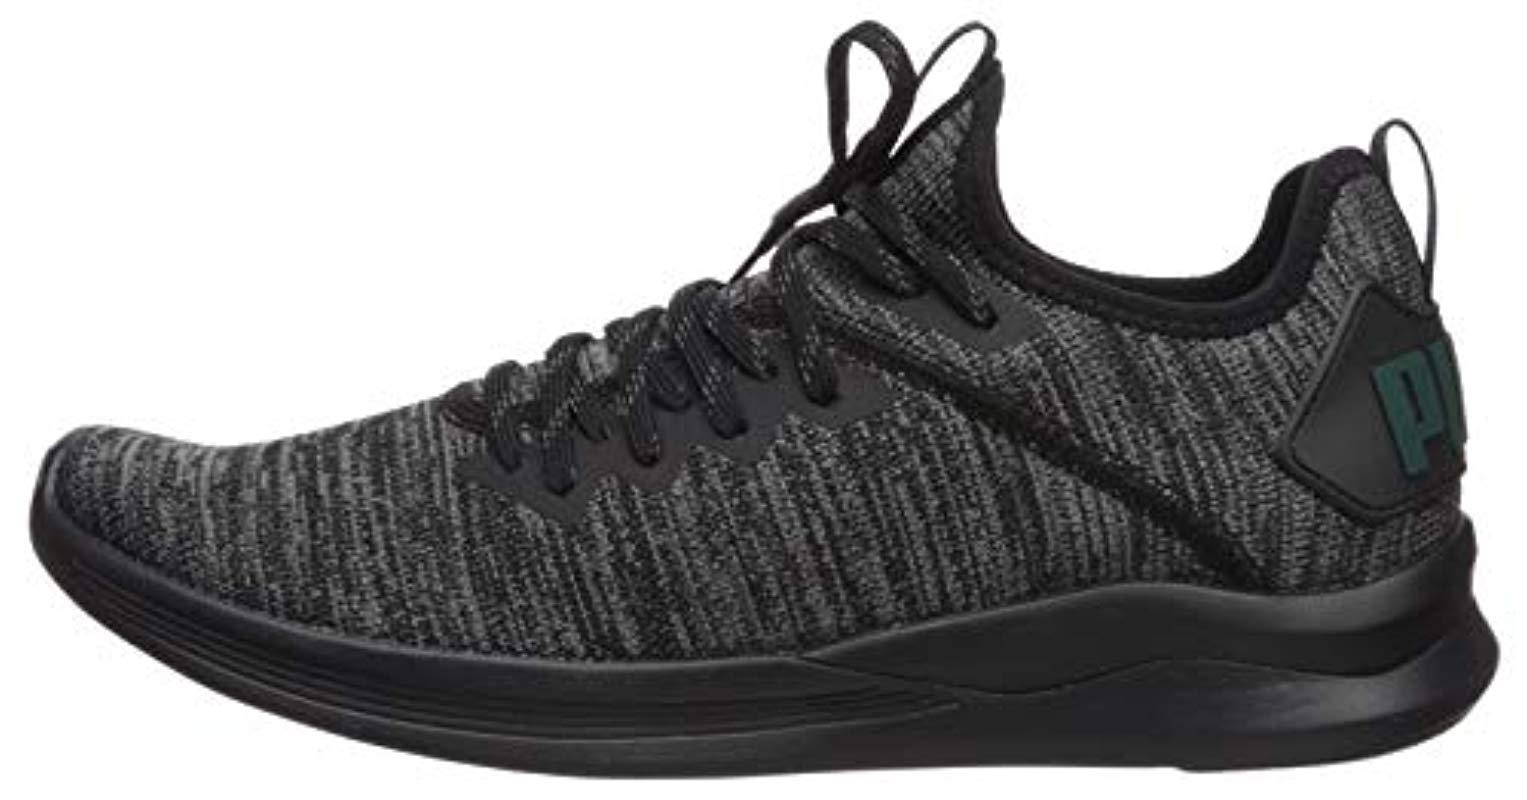 size 40 5e5f7 02616 PUMA Ignite Flash Evoknit Sneaker in Black for Men - Lyst